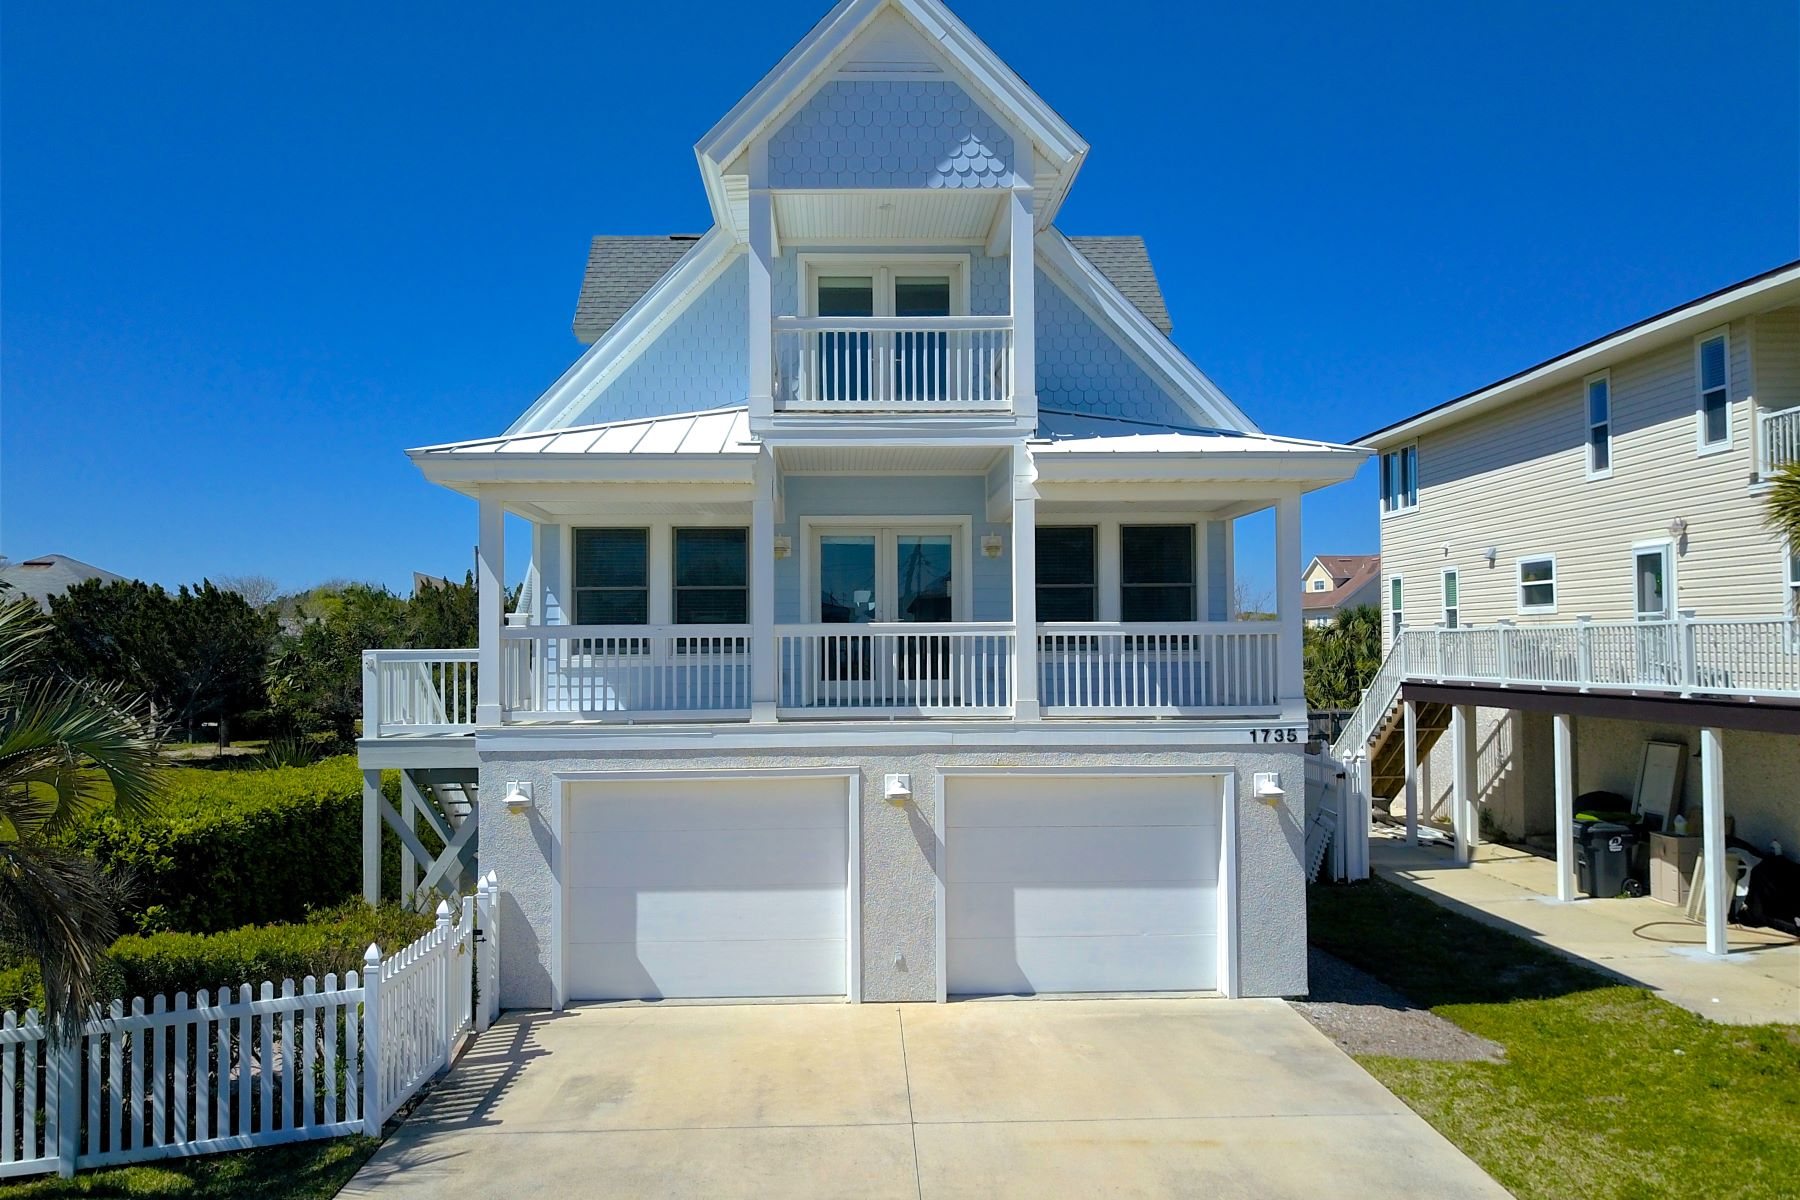 Casa para uma família para Venda às Charming Beach House with Ocean Views 1735 North Fletcher Avenue Amelia Island, Florida, 32034 Estados Unidos